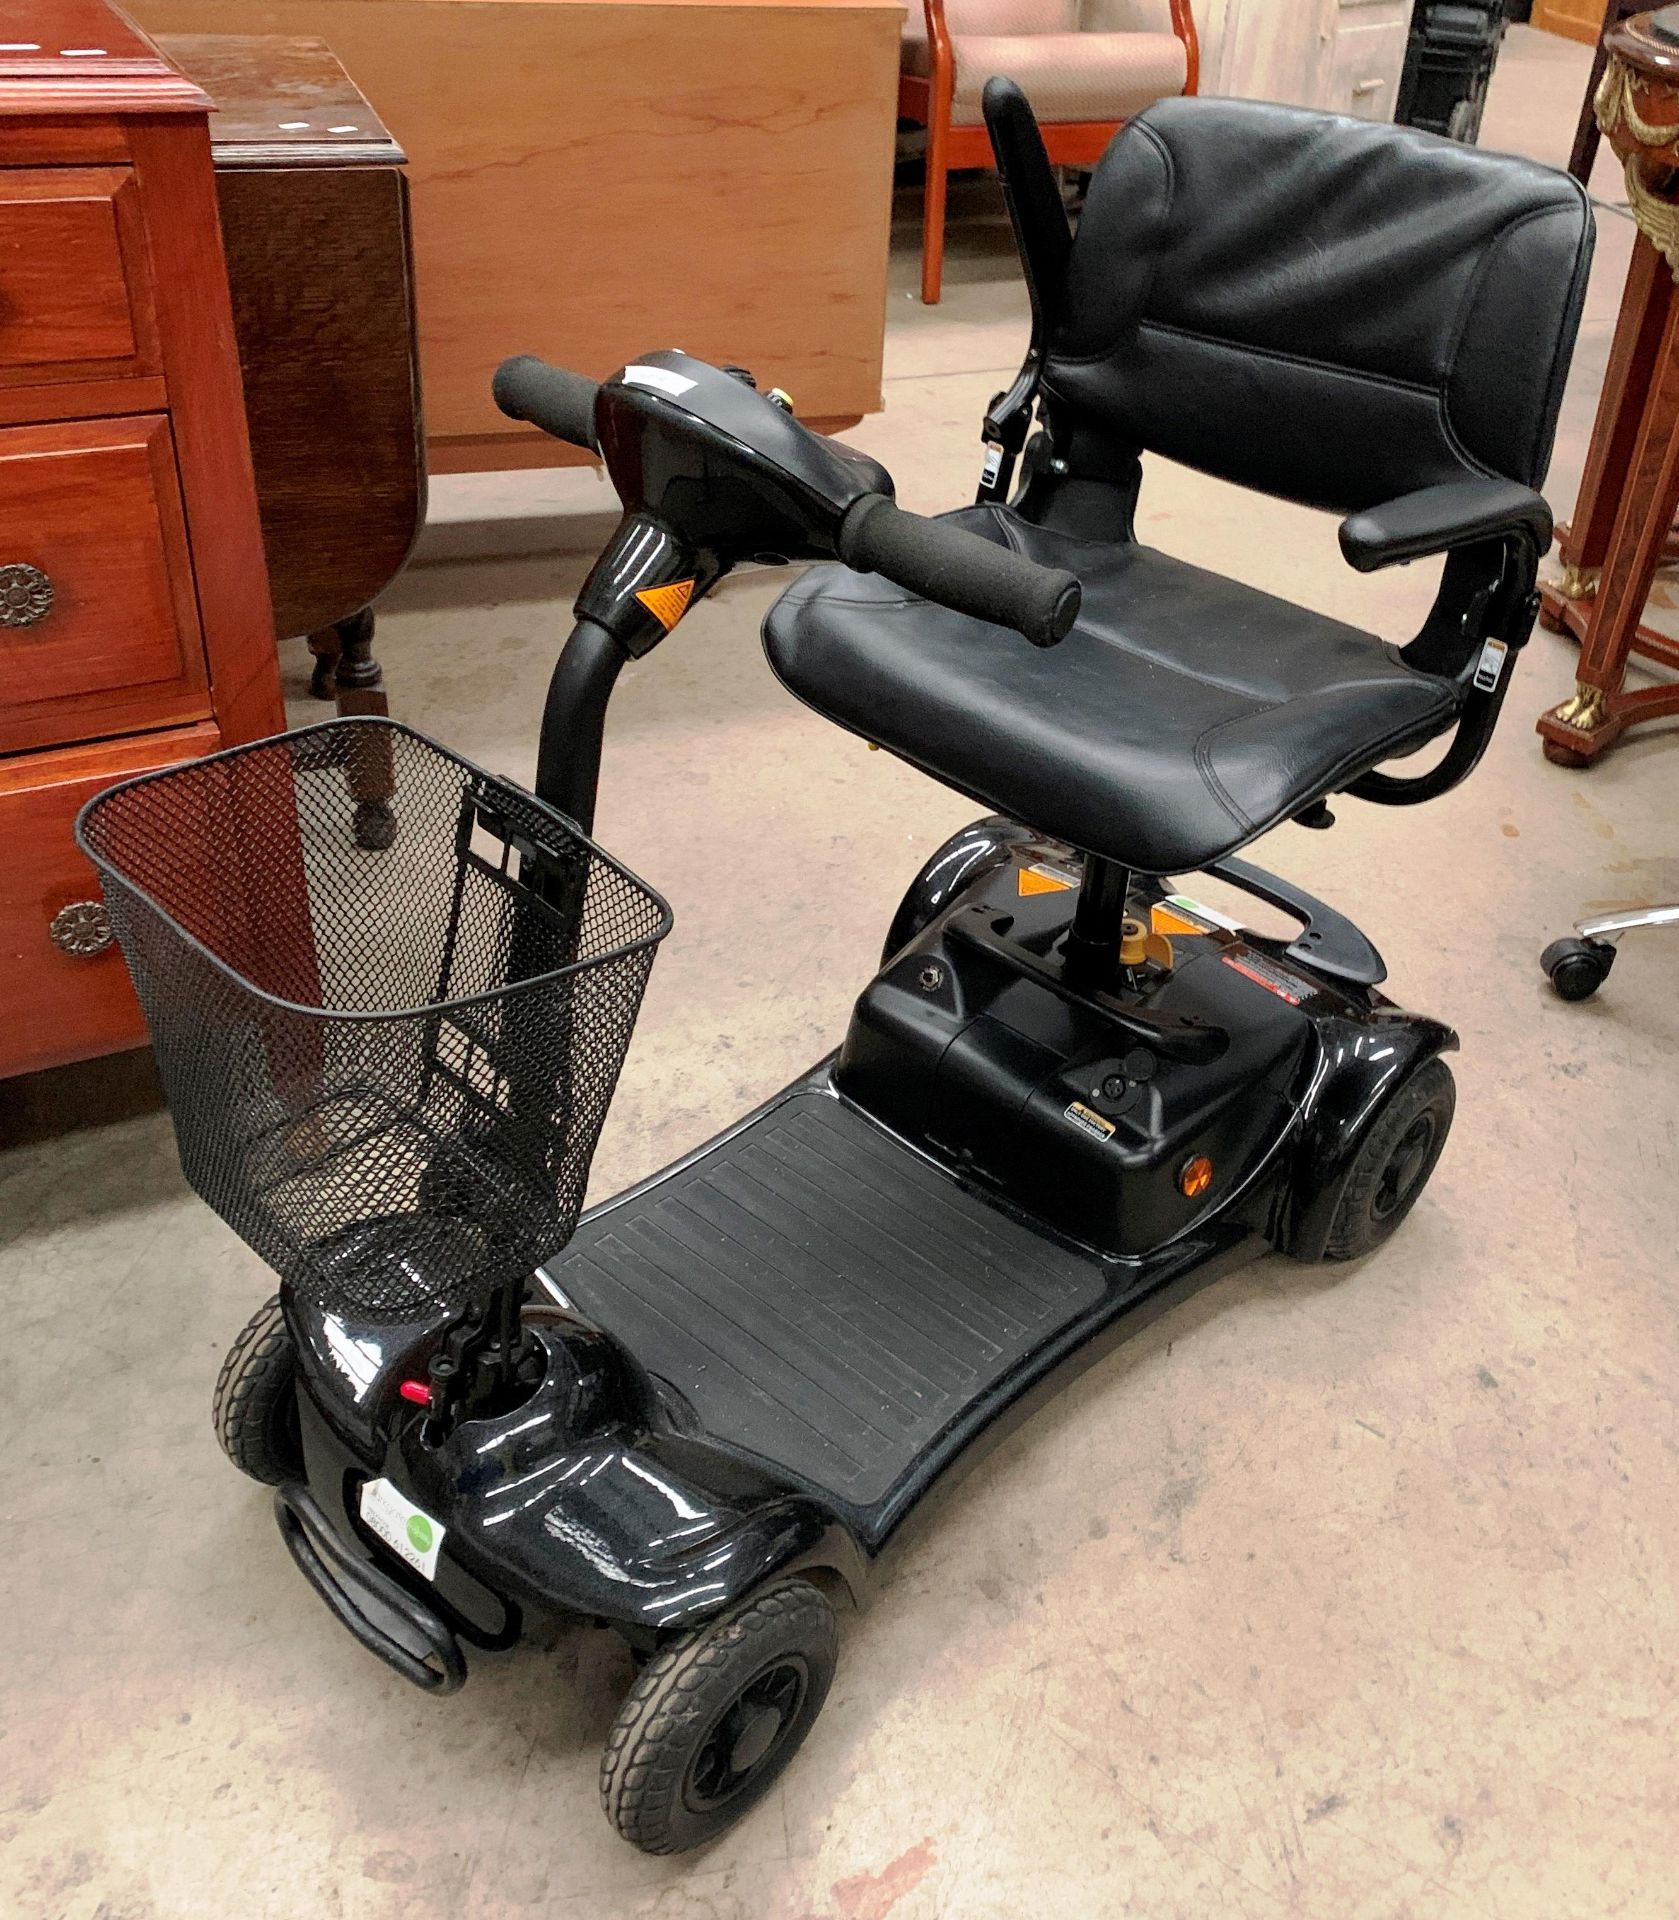 An Electric Mobility Euro Ltd Ultralite 480 mobility scooter complete with keys, manual, - Image 2 of 2